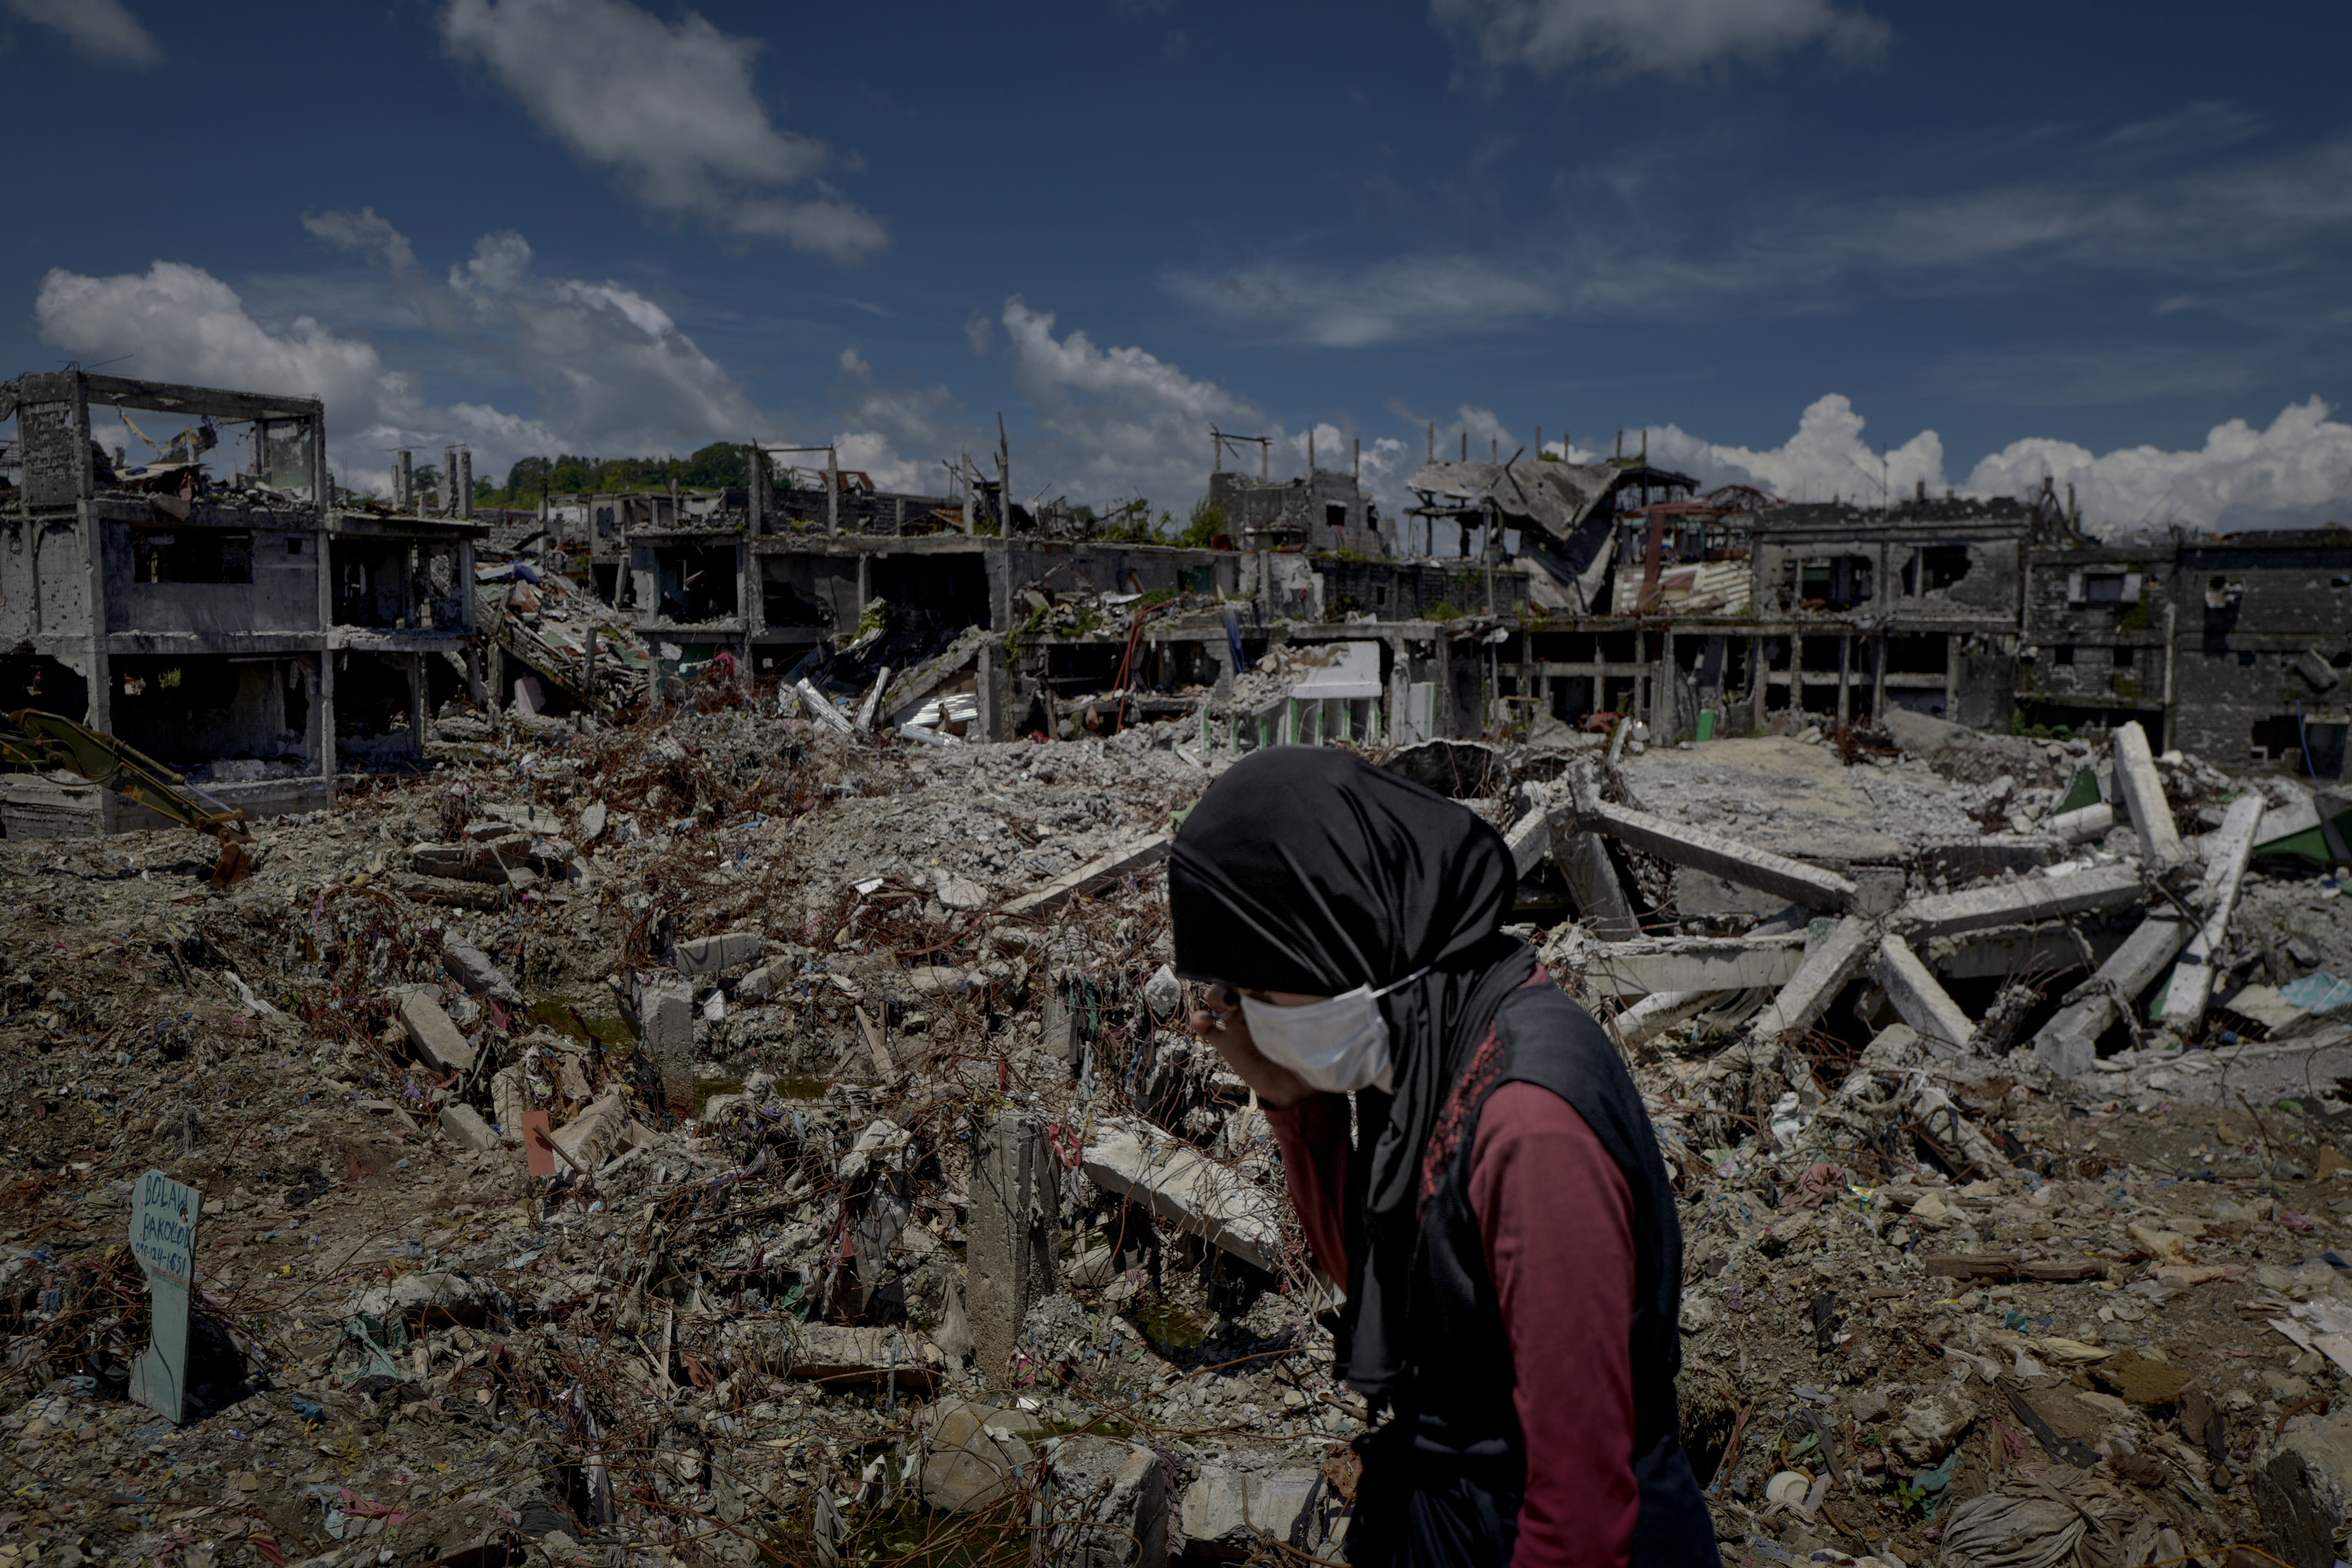 A woman stands amid the destruction inside Marawi city on May 10, 2018 in Marawi, Philippines.